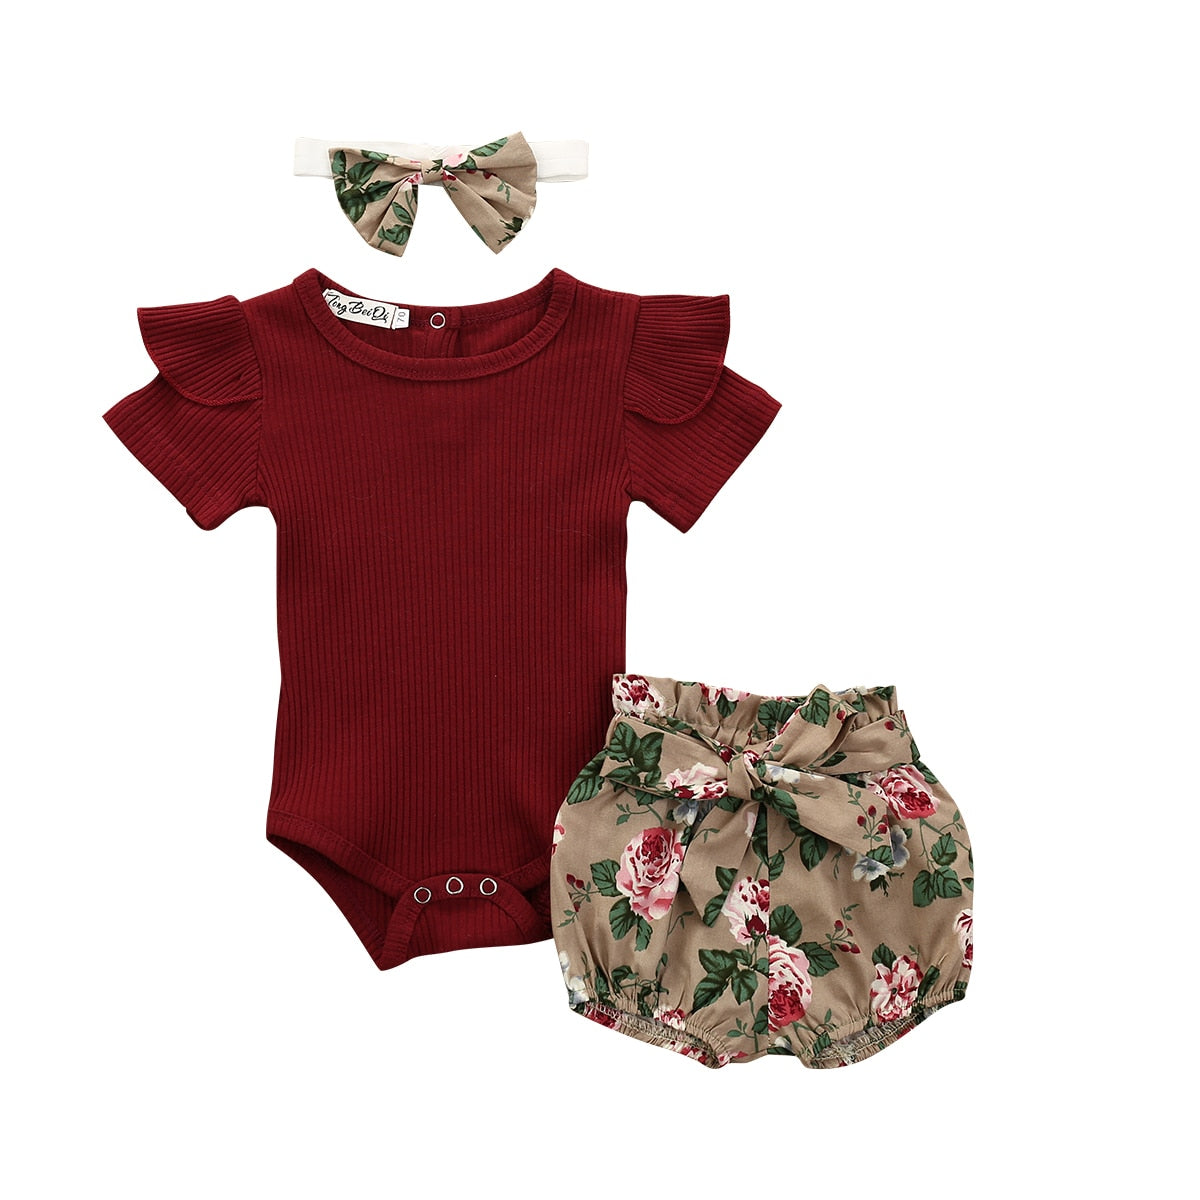 lovebabymammy.com Newborn Baby Girls Clothing Sets Fashion Solid color For Girls Outfit Bodysuit Shorts Headband New born Infant Clothing Sets